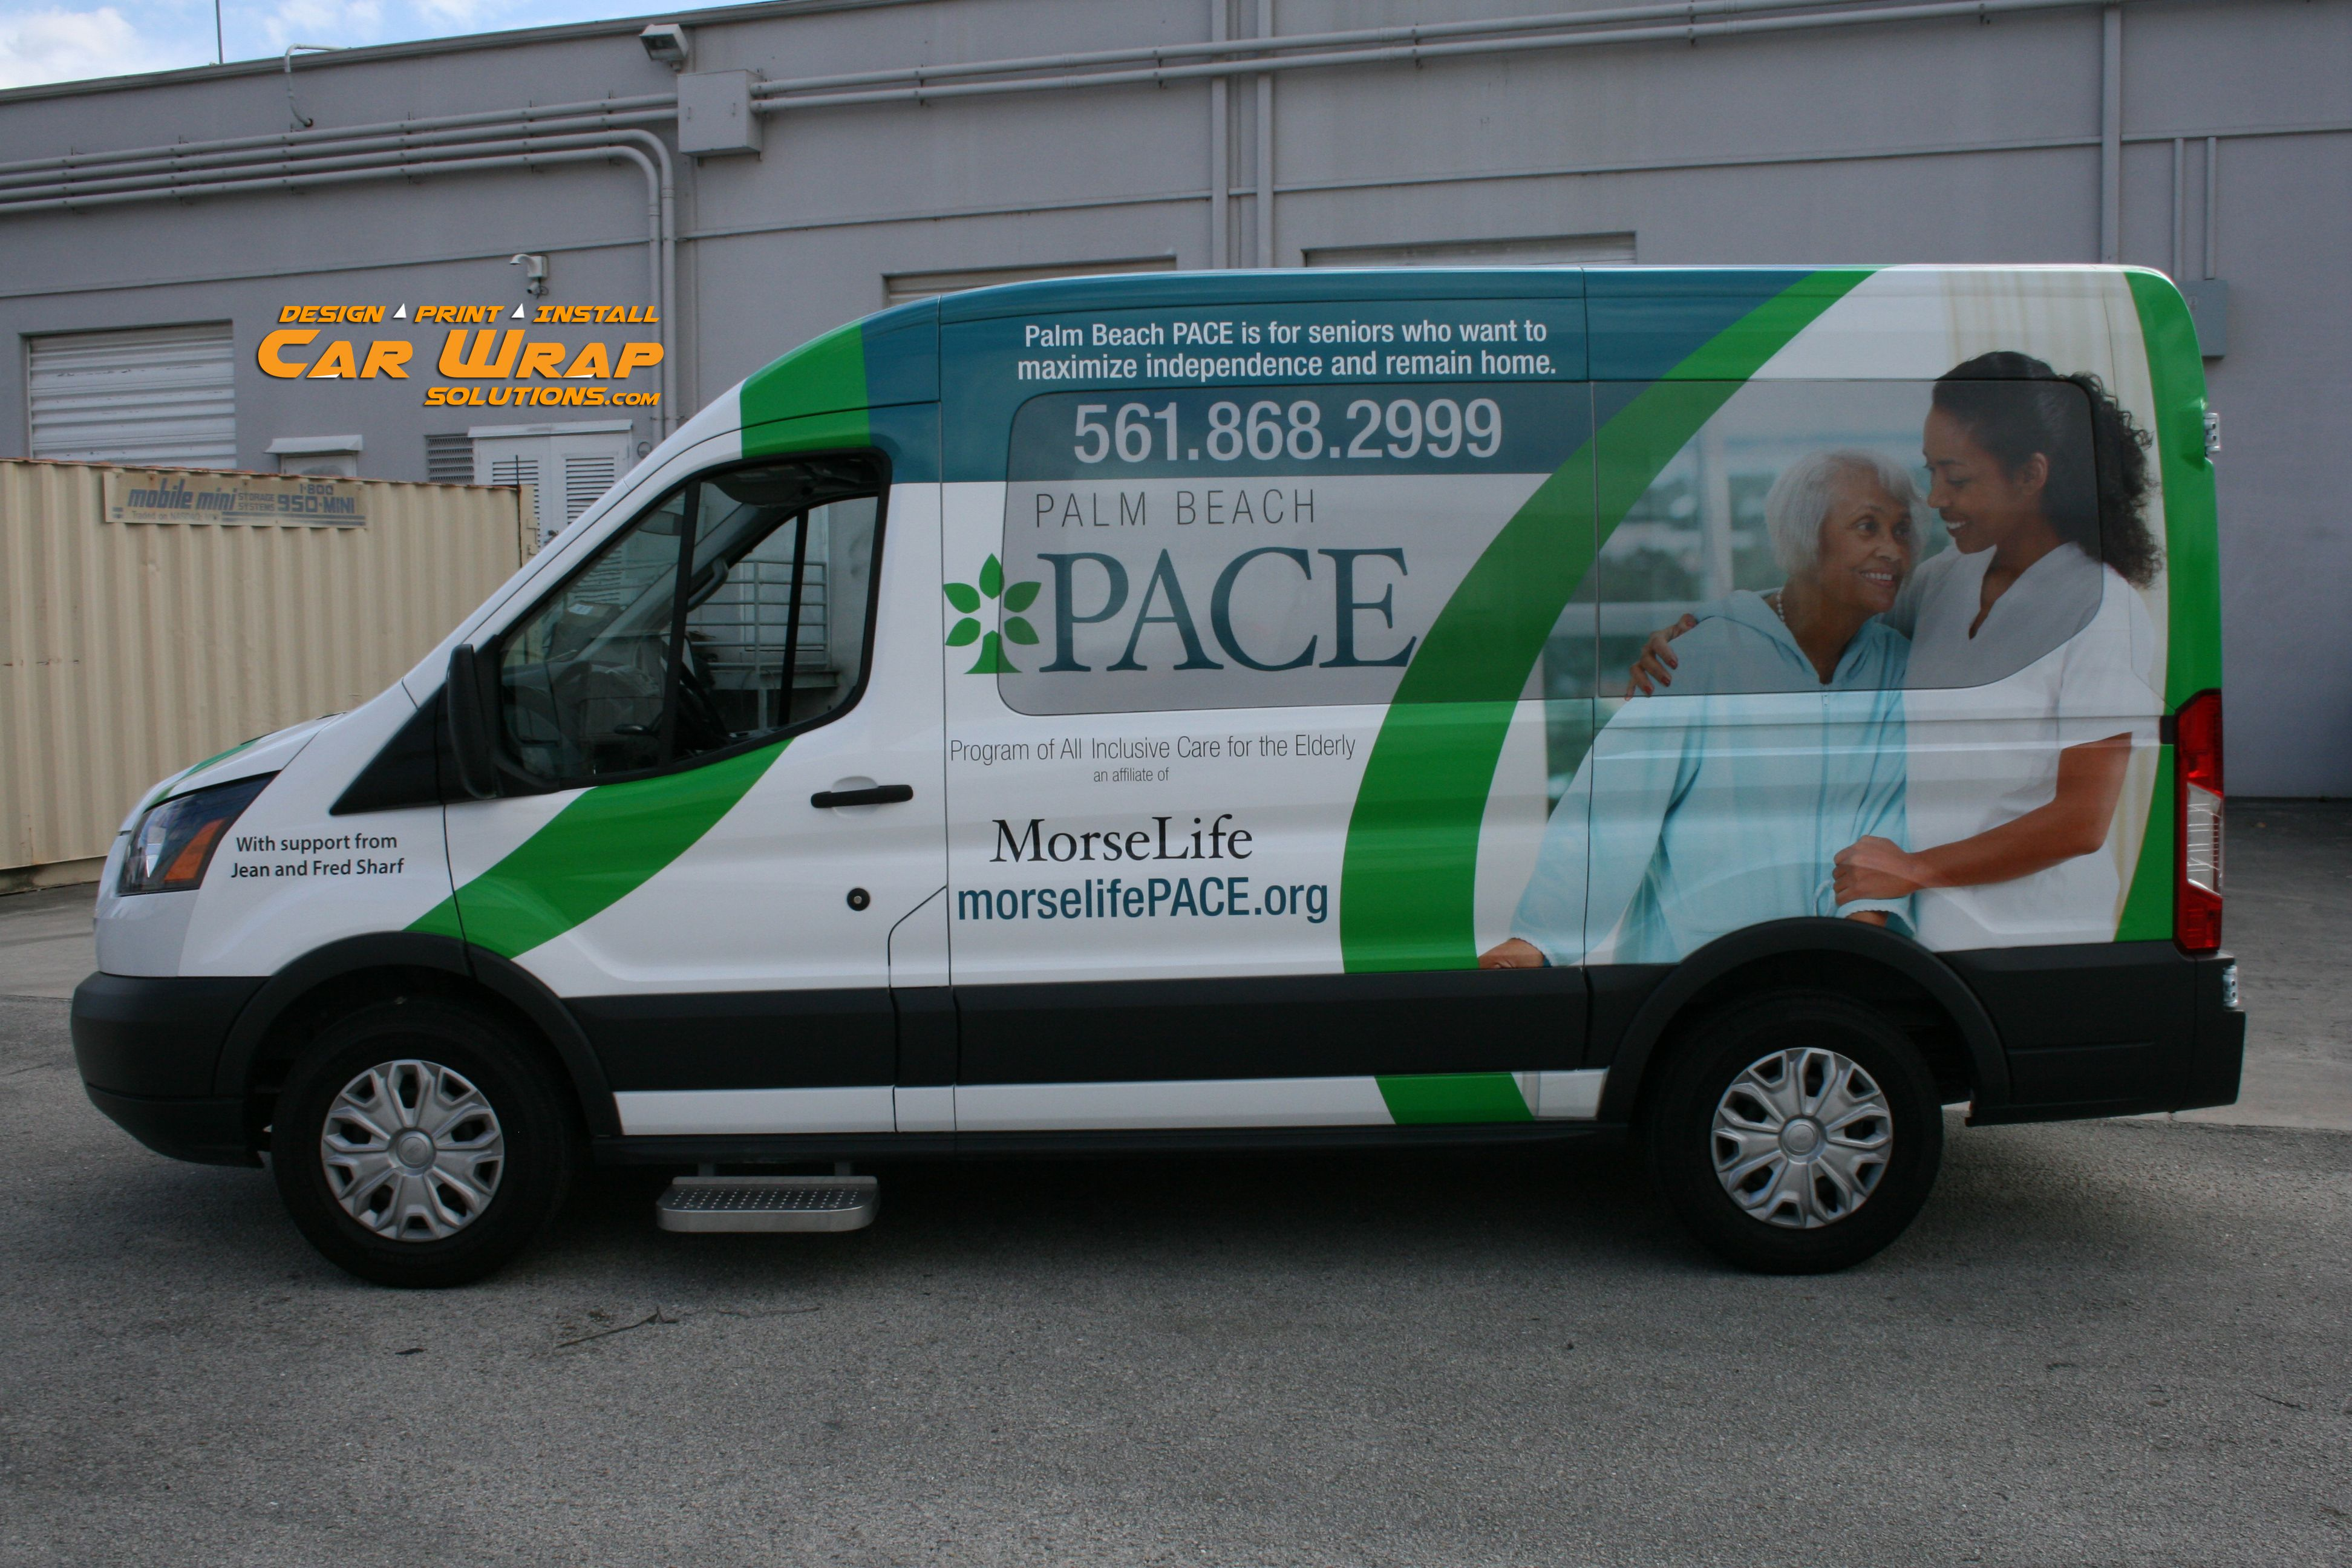 a7c42a85e2 Ford Transit Passenger Van Marketing Wrap for Health Care Industry  Businesses. Graphic Design to Install